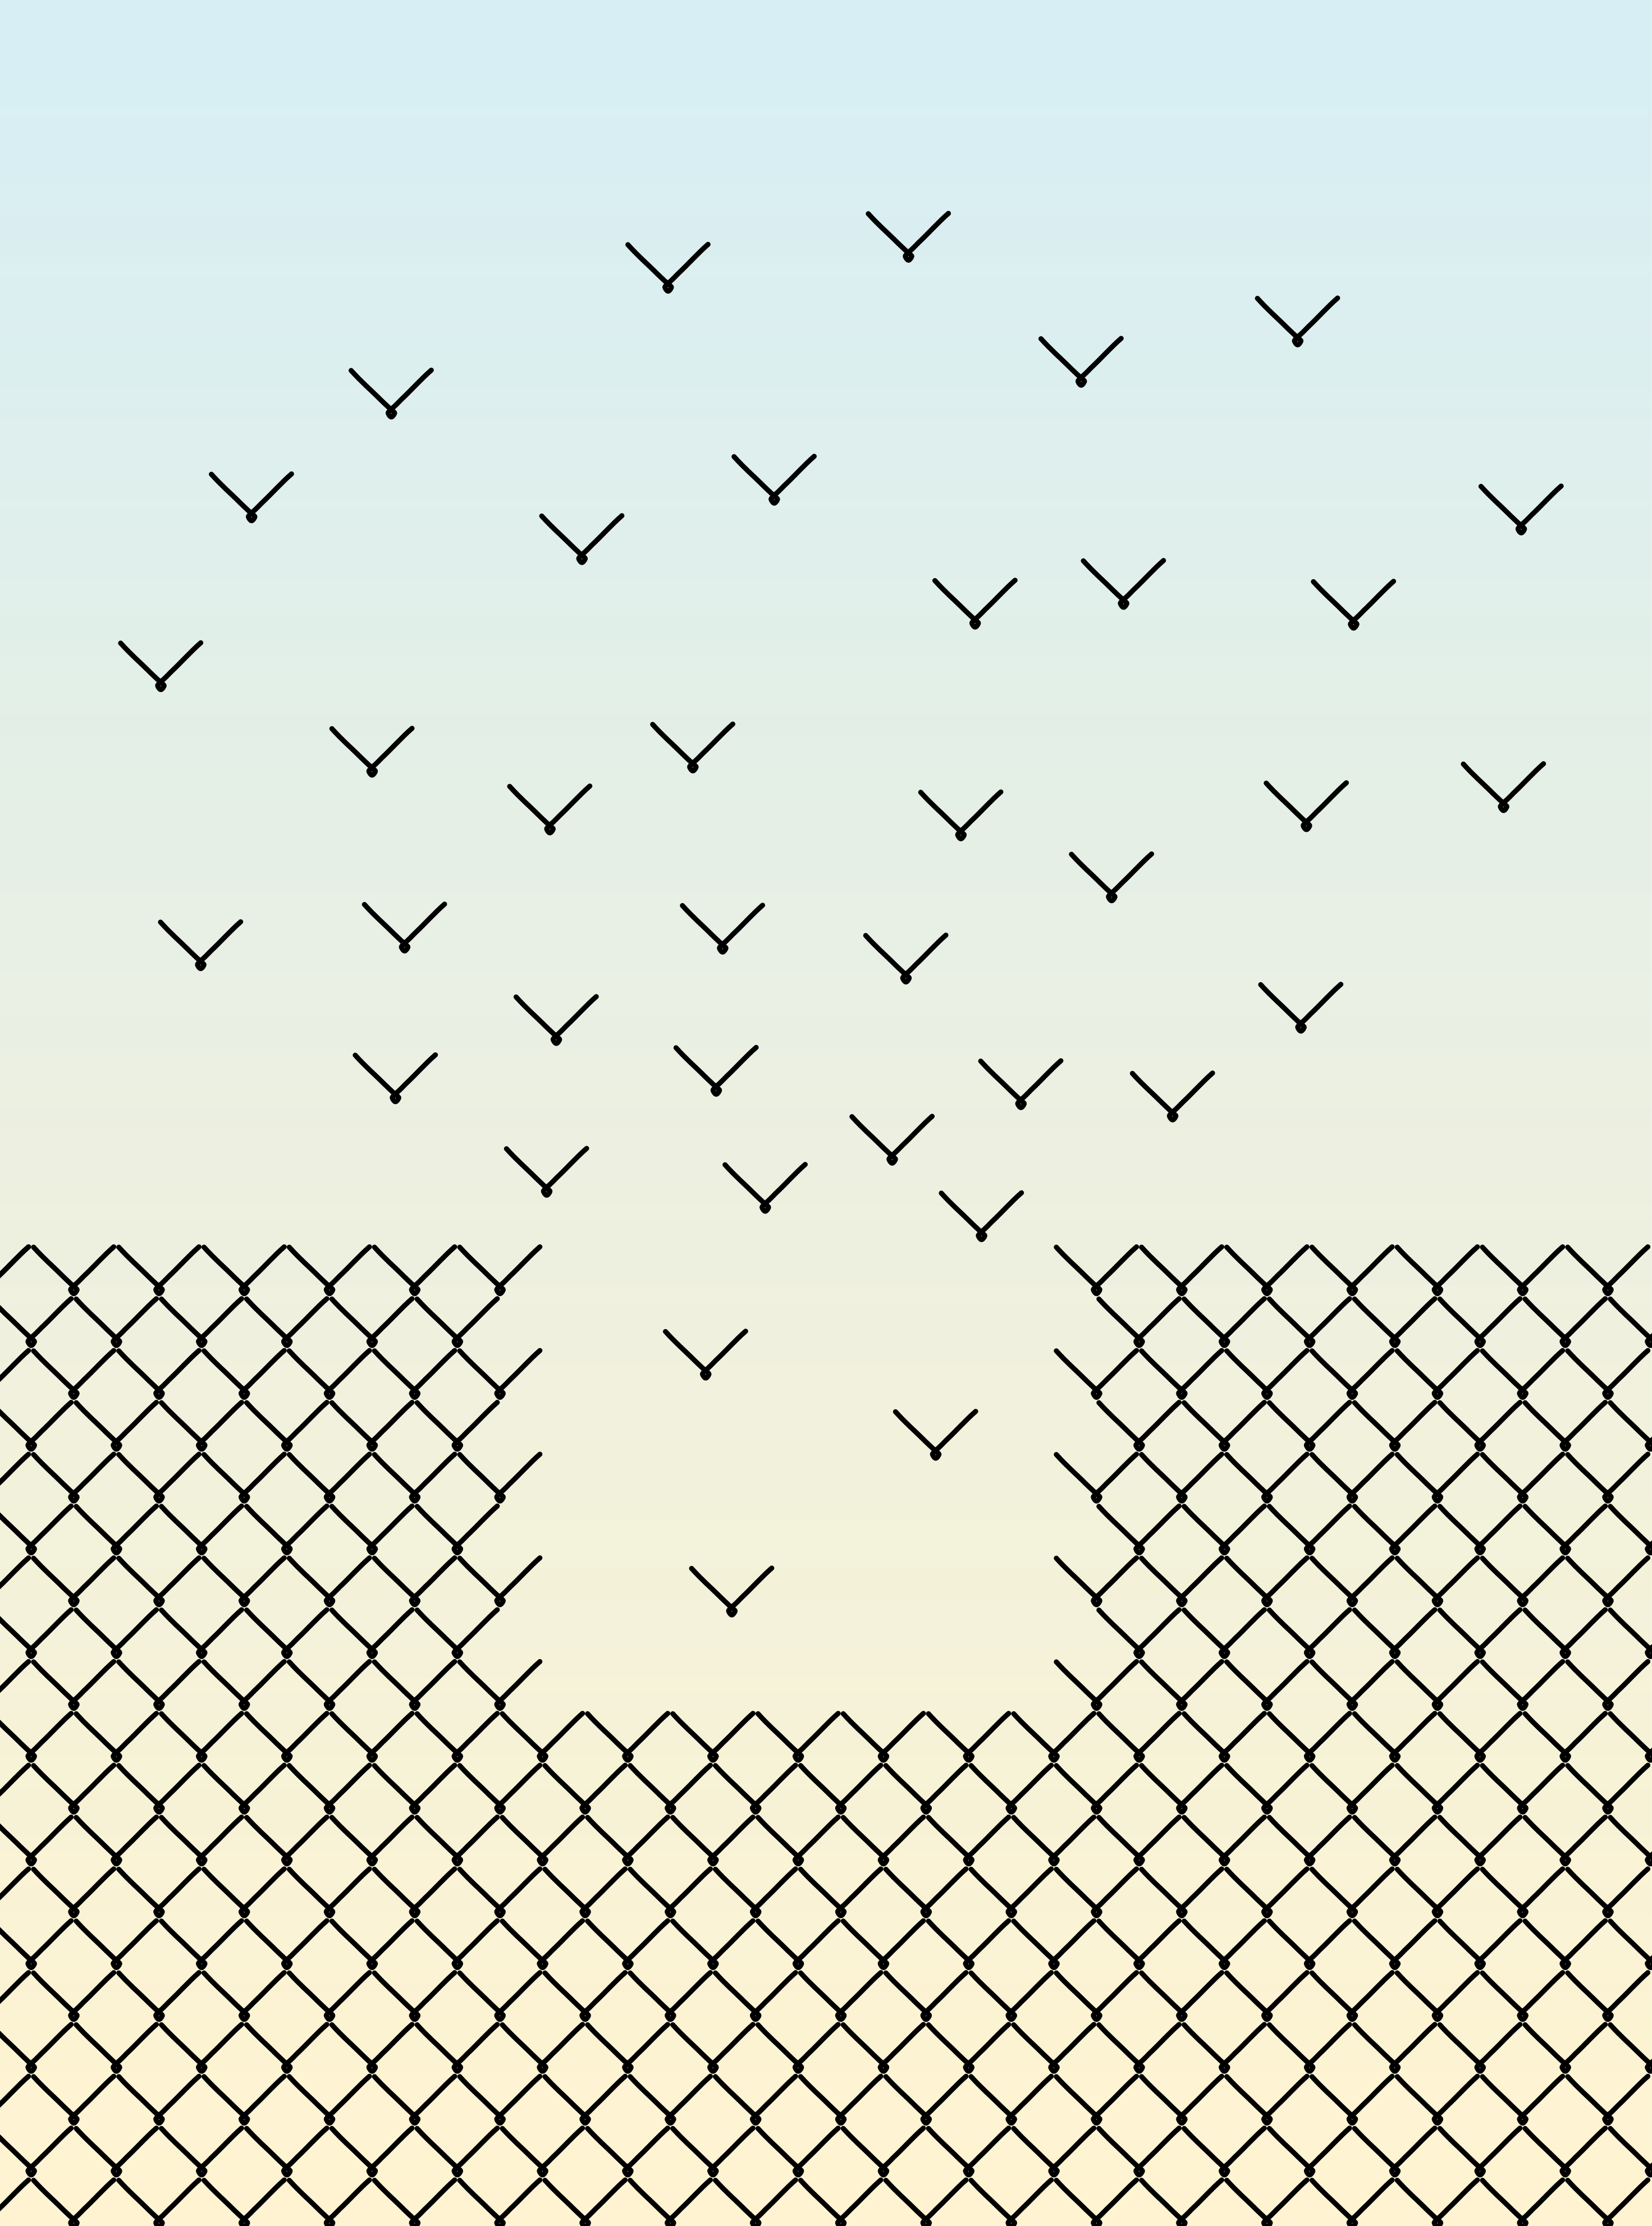 File link liberty wikimedia. Fence svg chain clip art free library